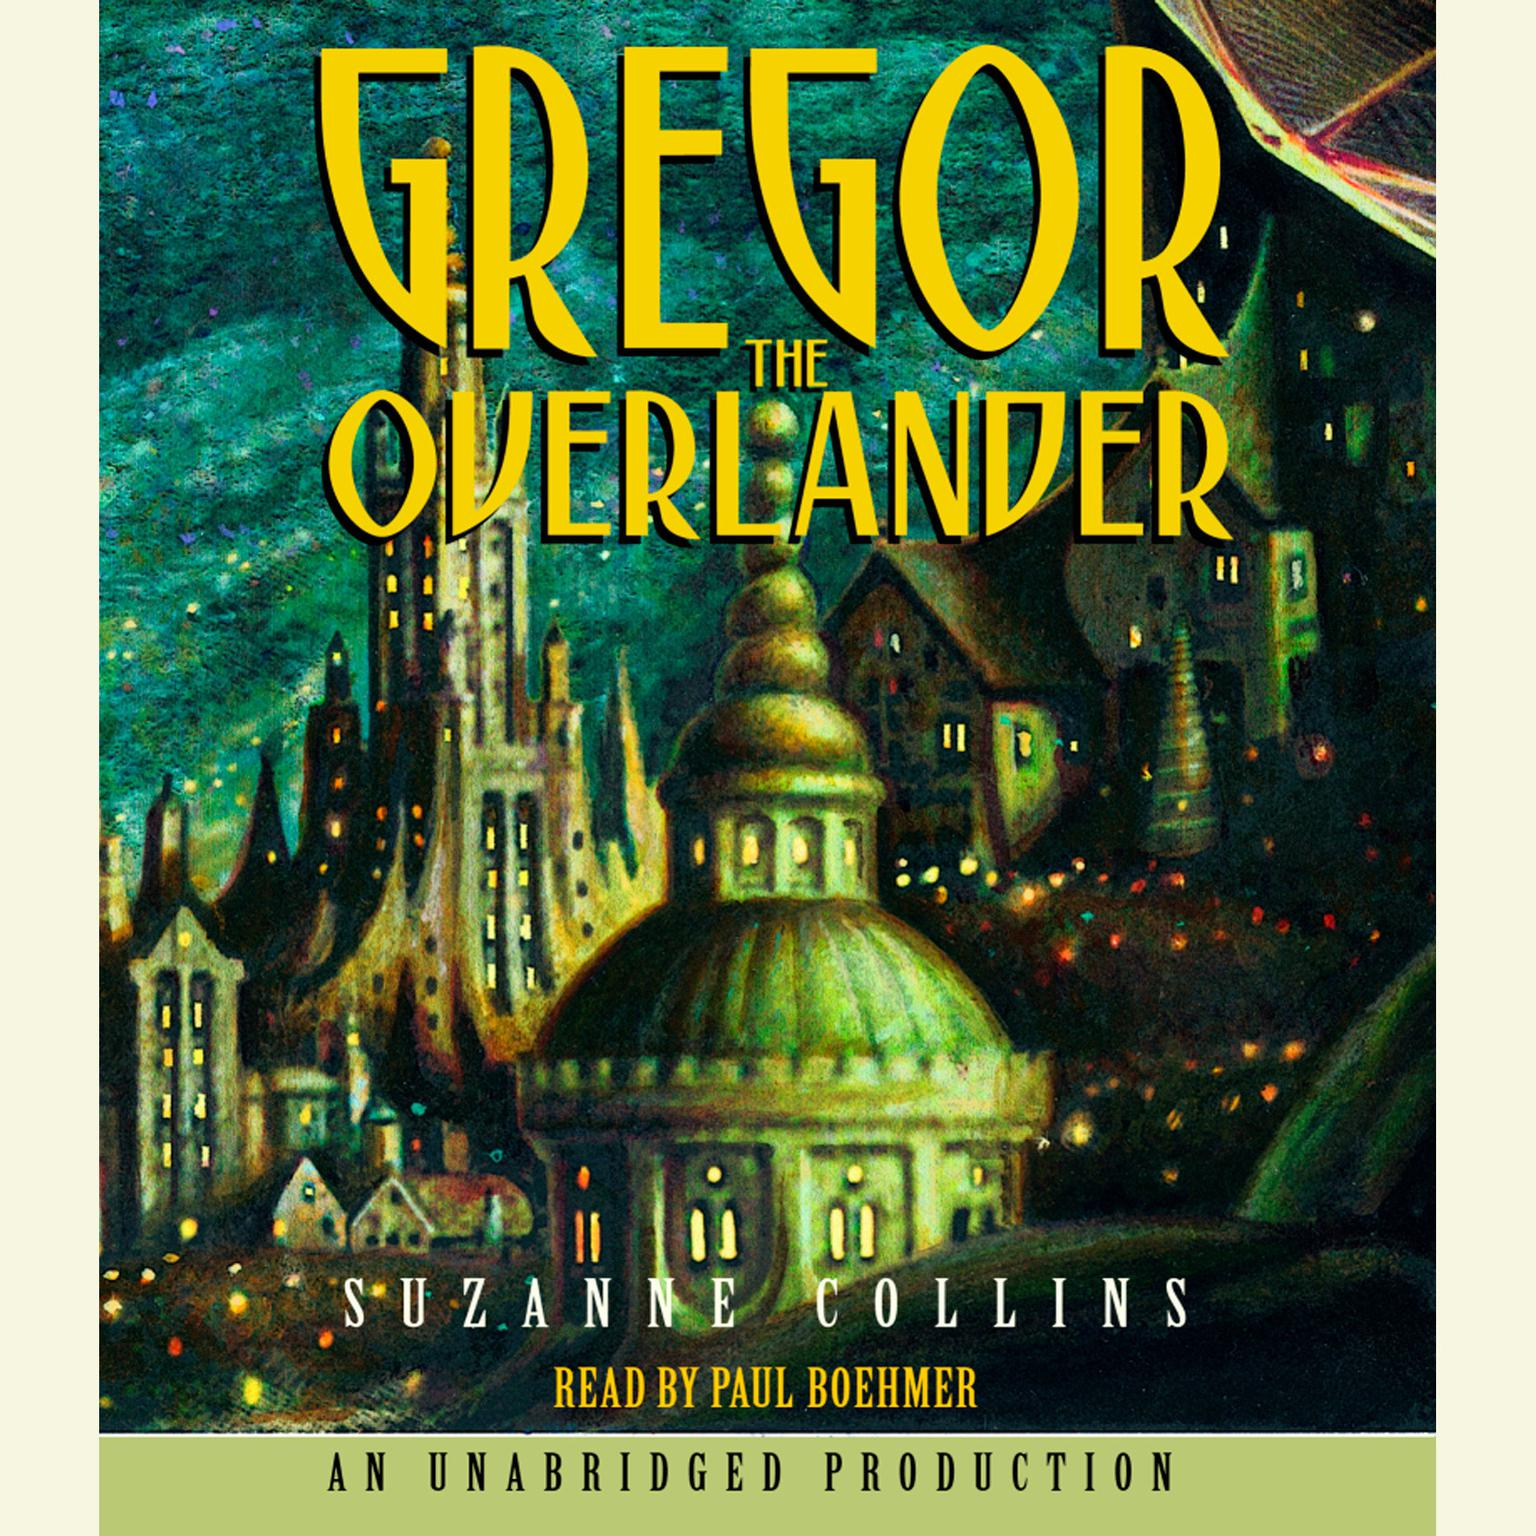 Printable The Underland Chronicles Book One: Gregor the Overlander Audiobook Cover Art